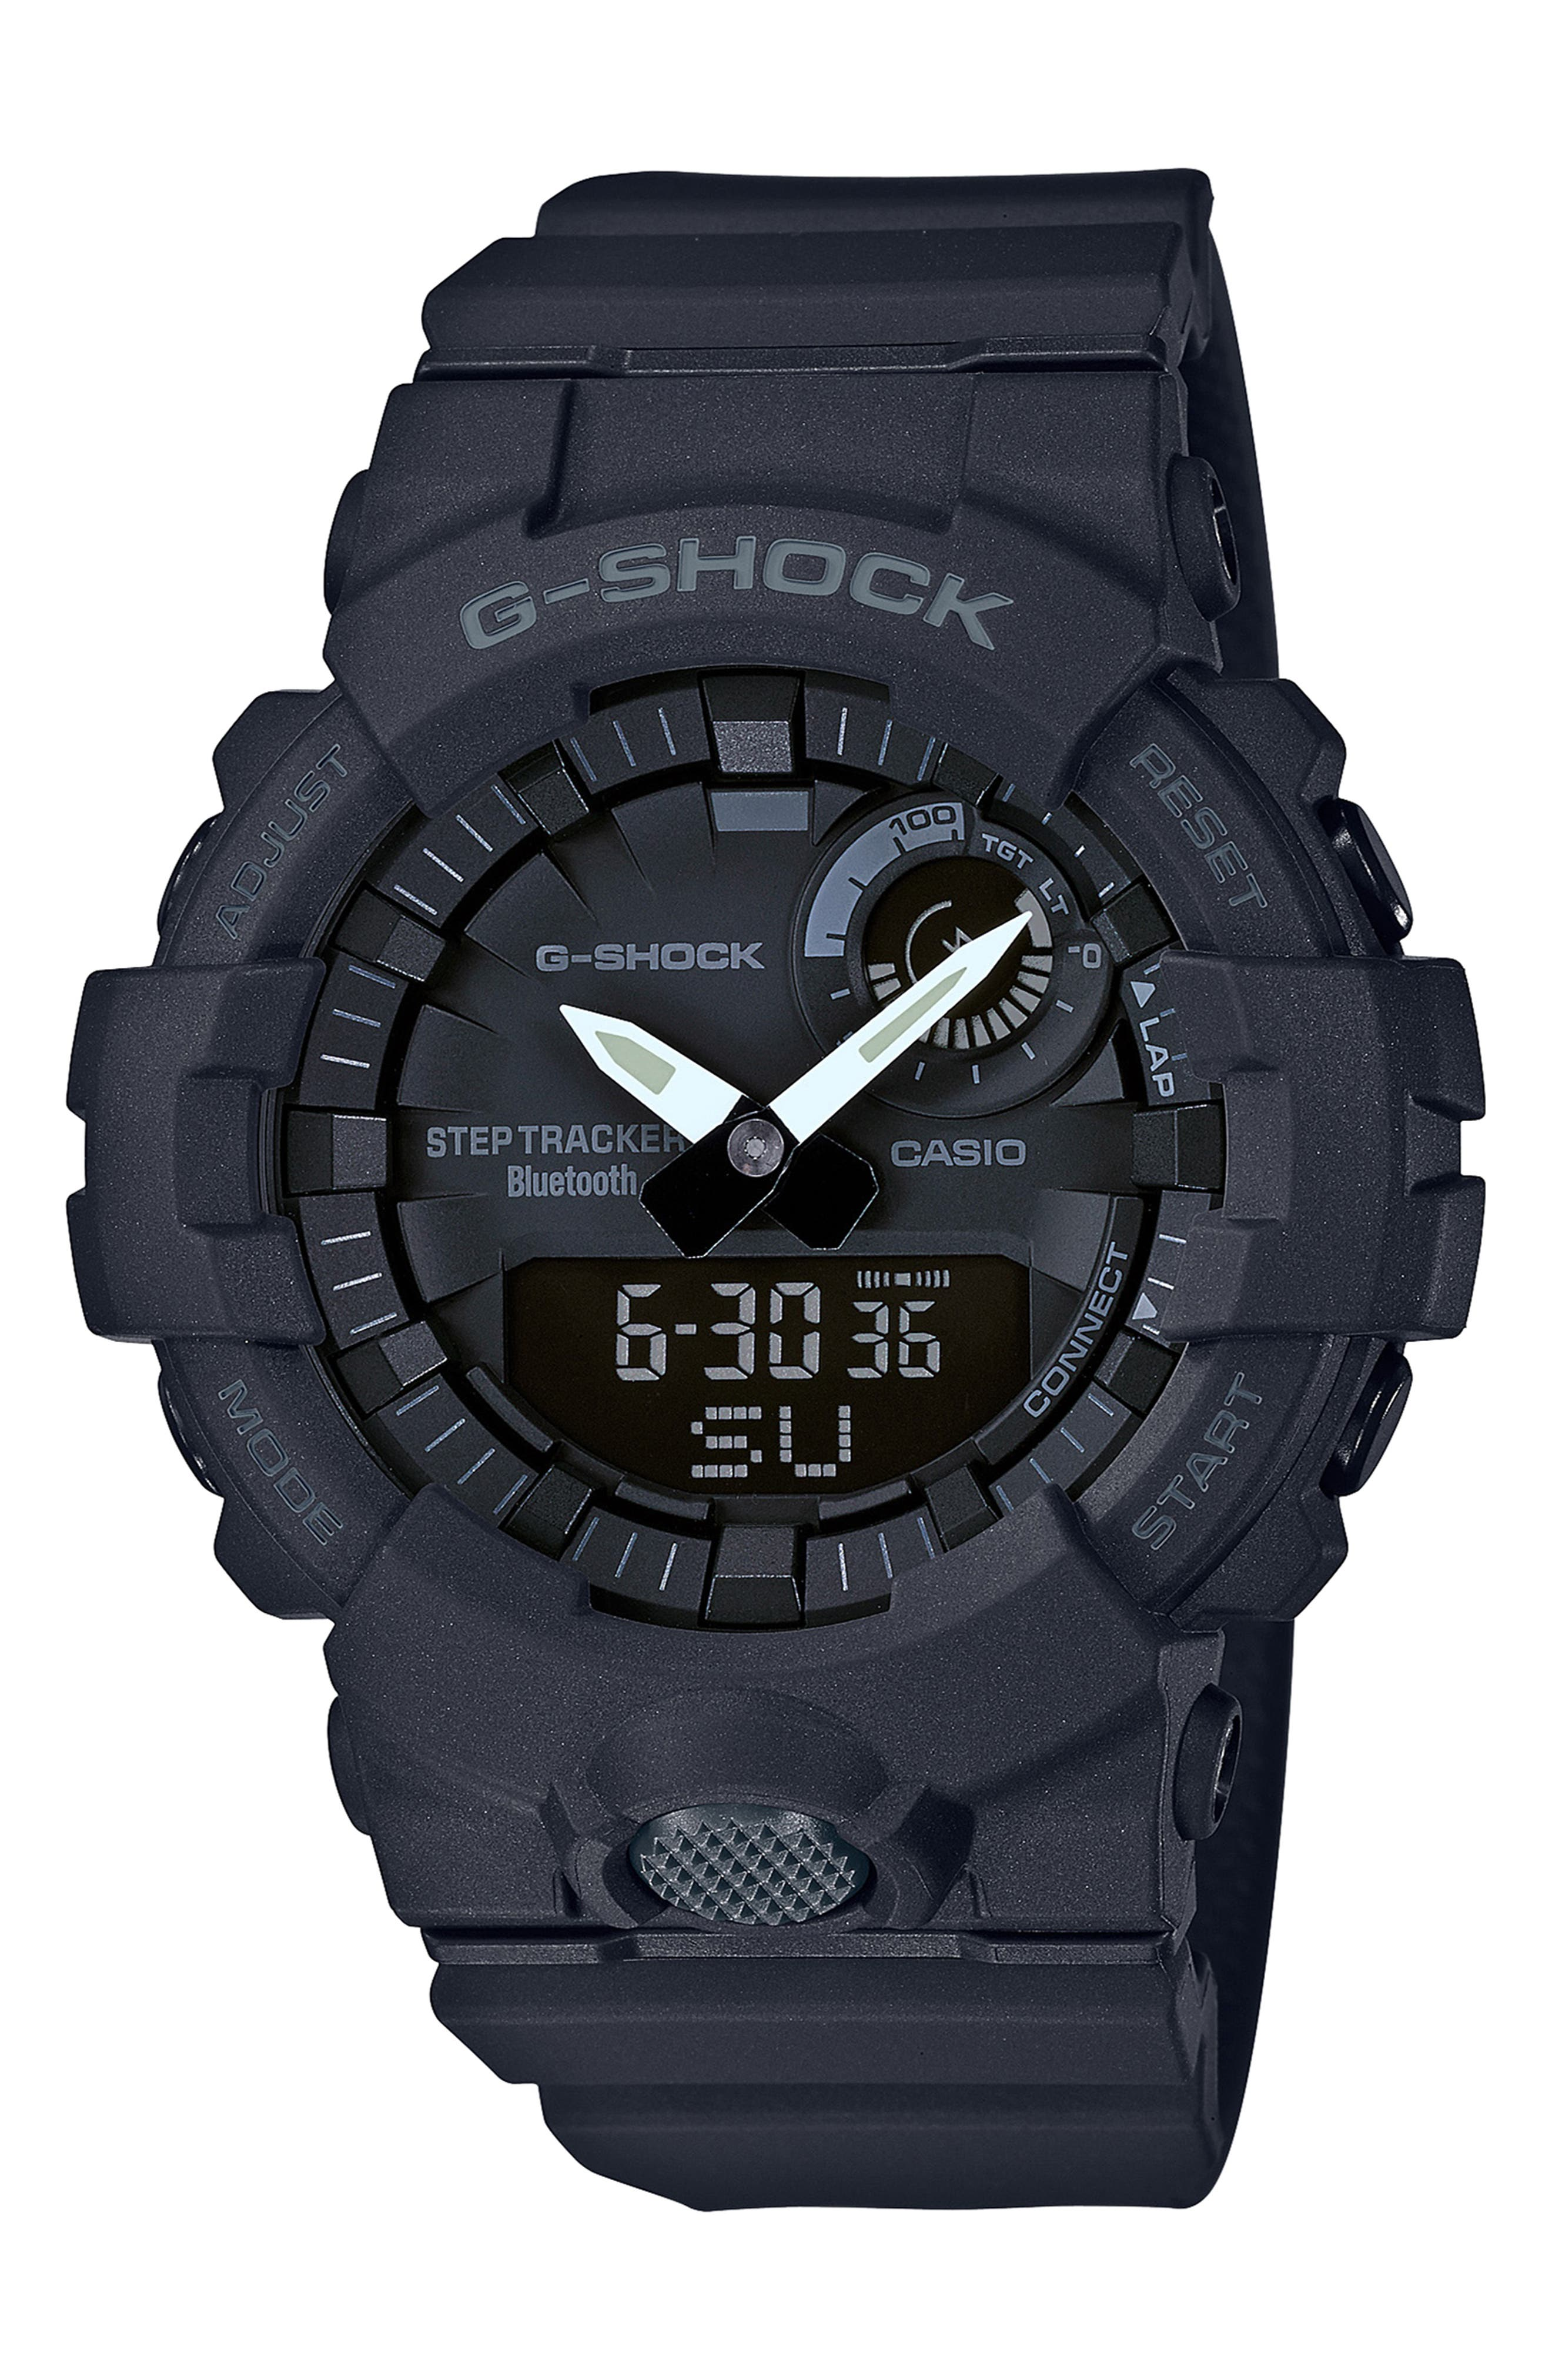 G-SHOCK BABY-G, G-Shock Steptracker Bluetooth<sup>®</sup> Enabled Resin Strap Watch, 49mm, Main thumbnail 1, color, BLACK